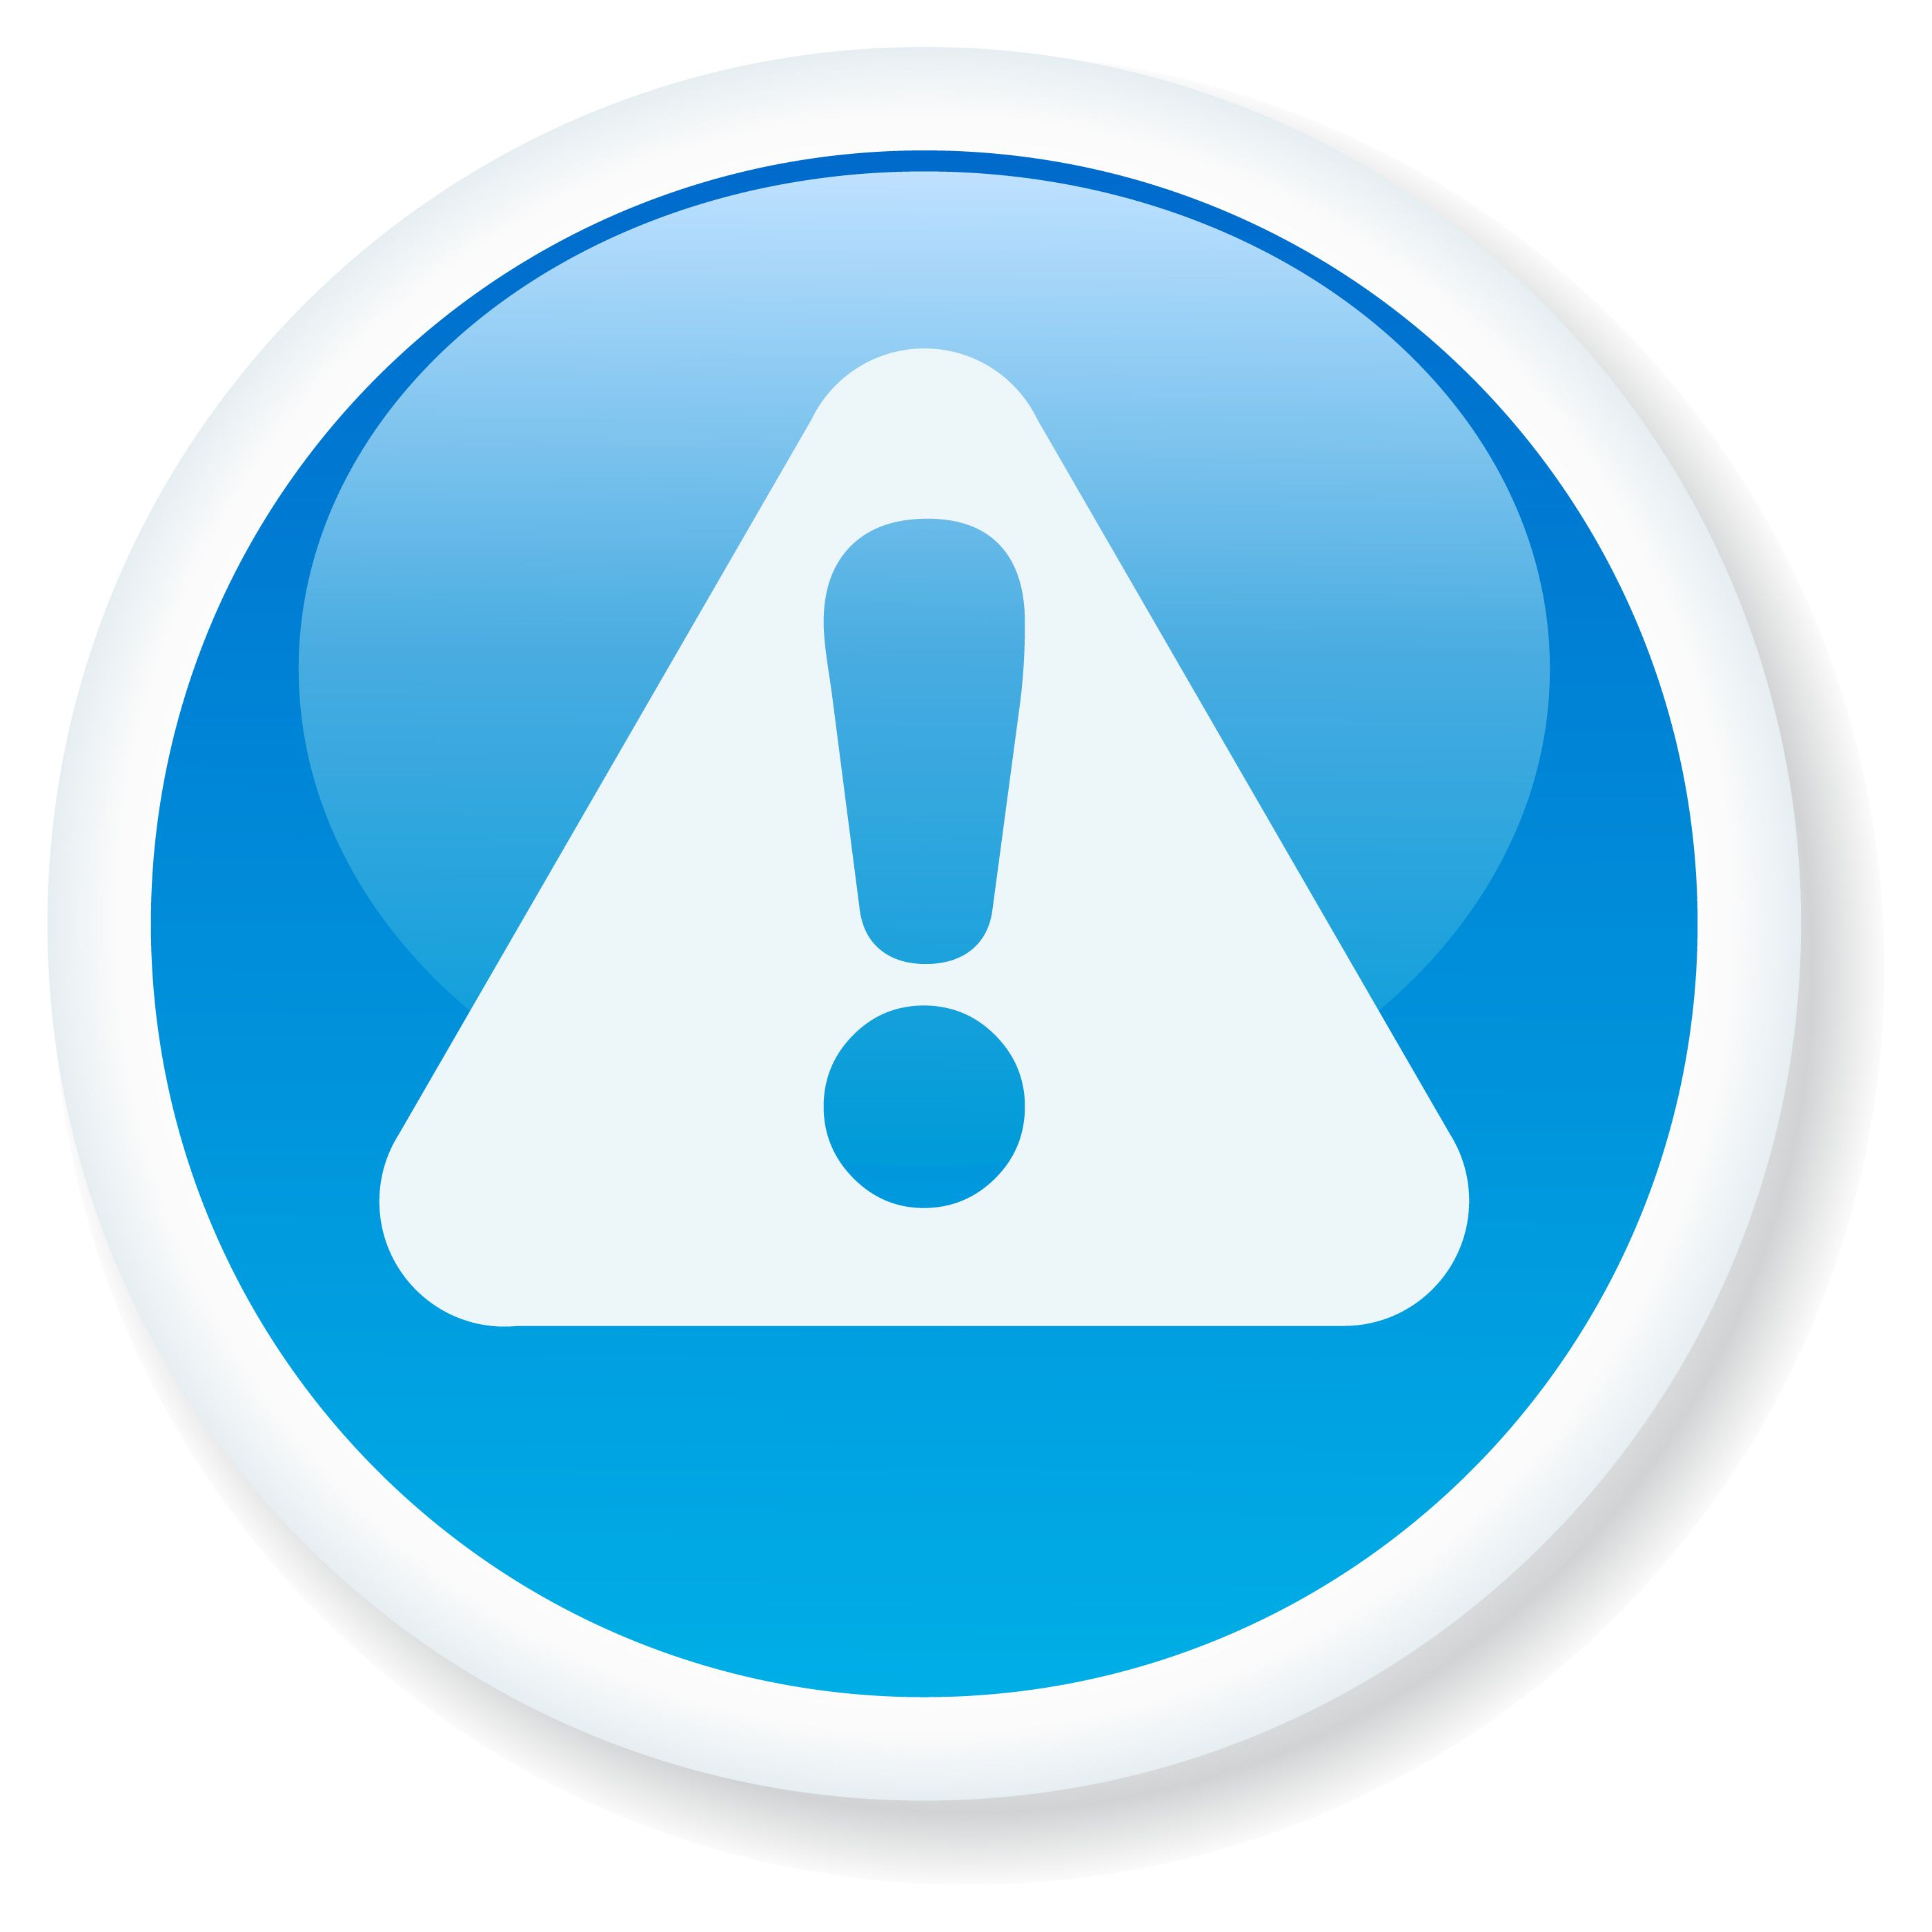 Alert Icon With Exclamation Point! image #1579